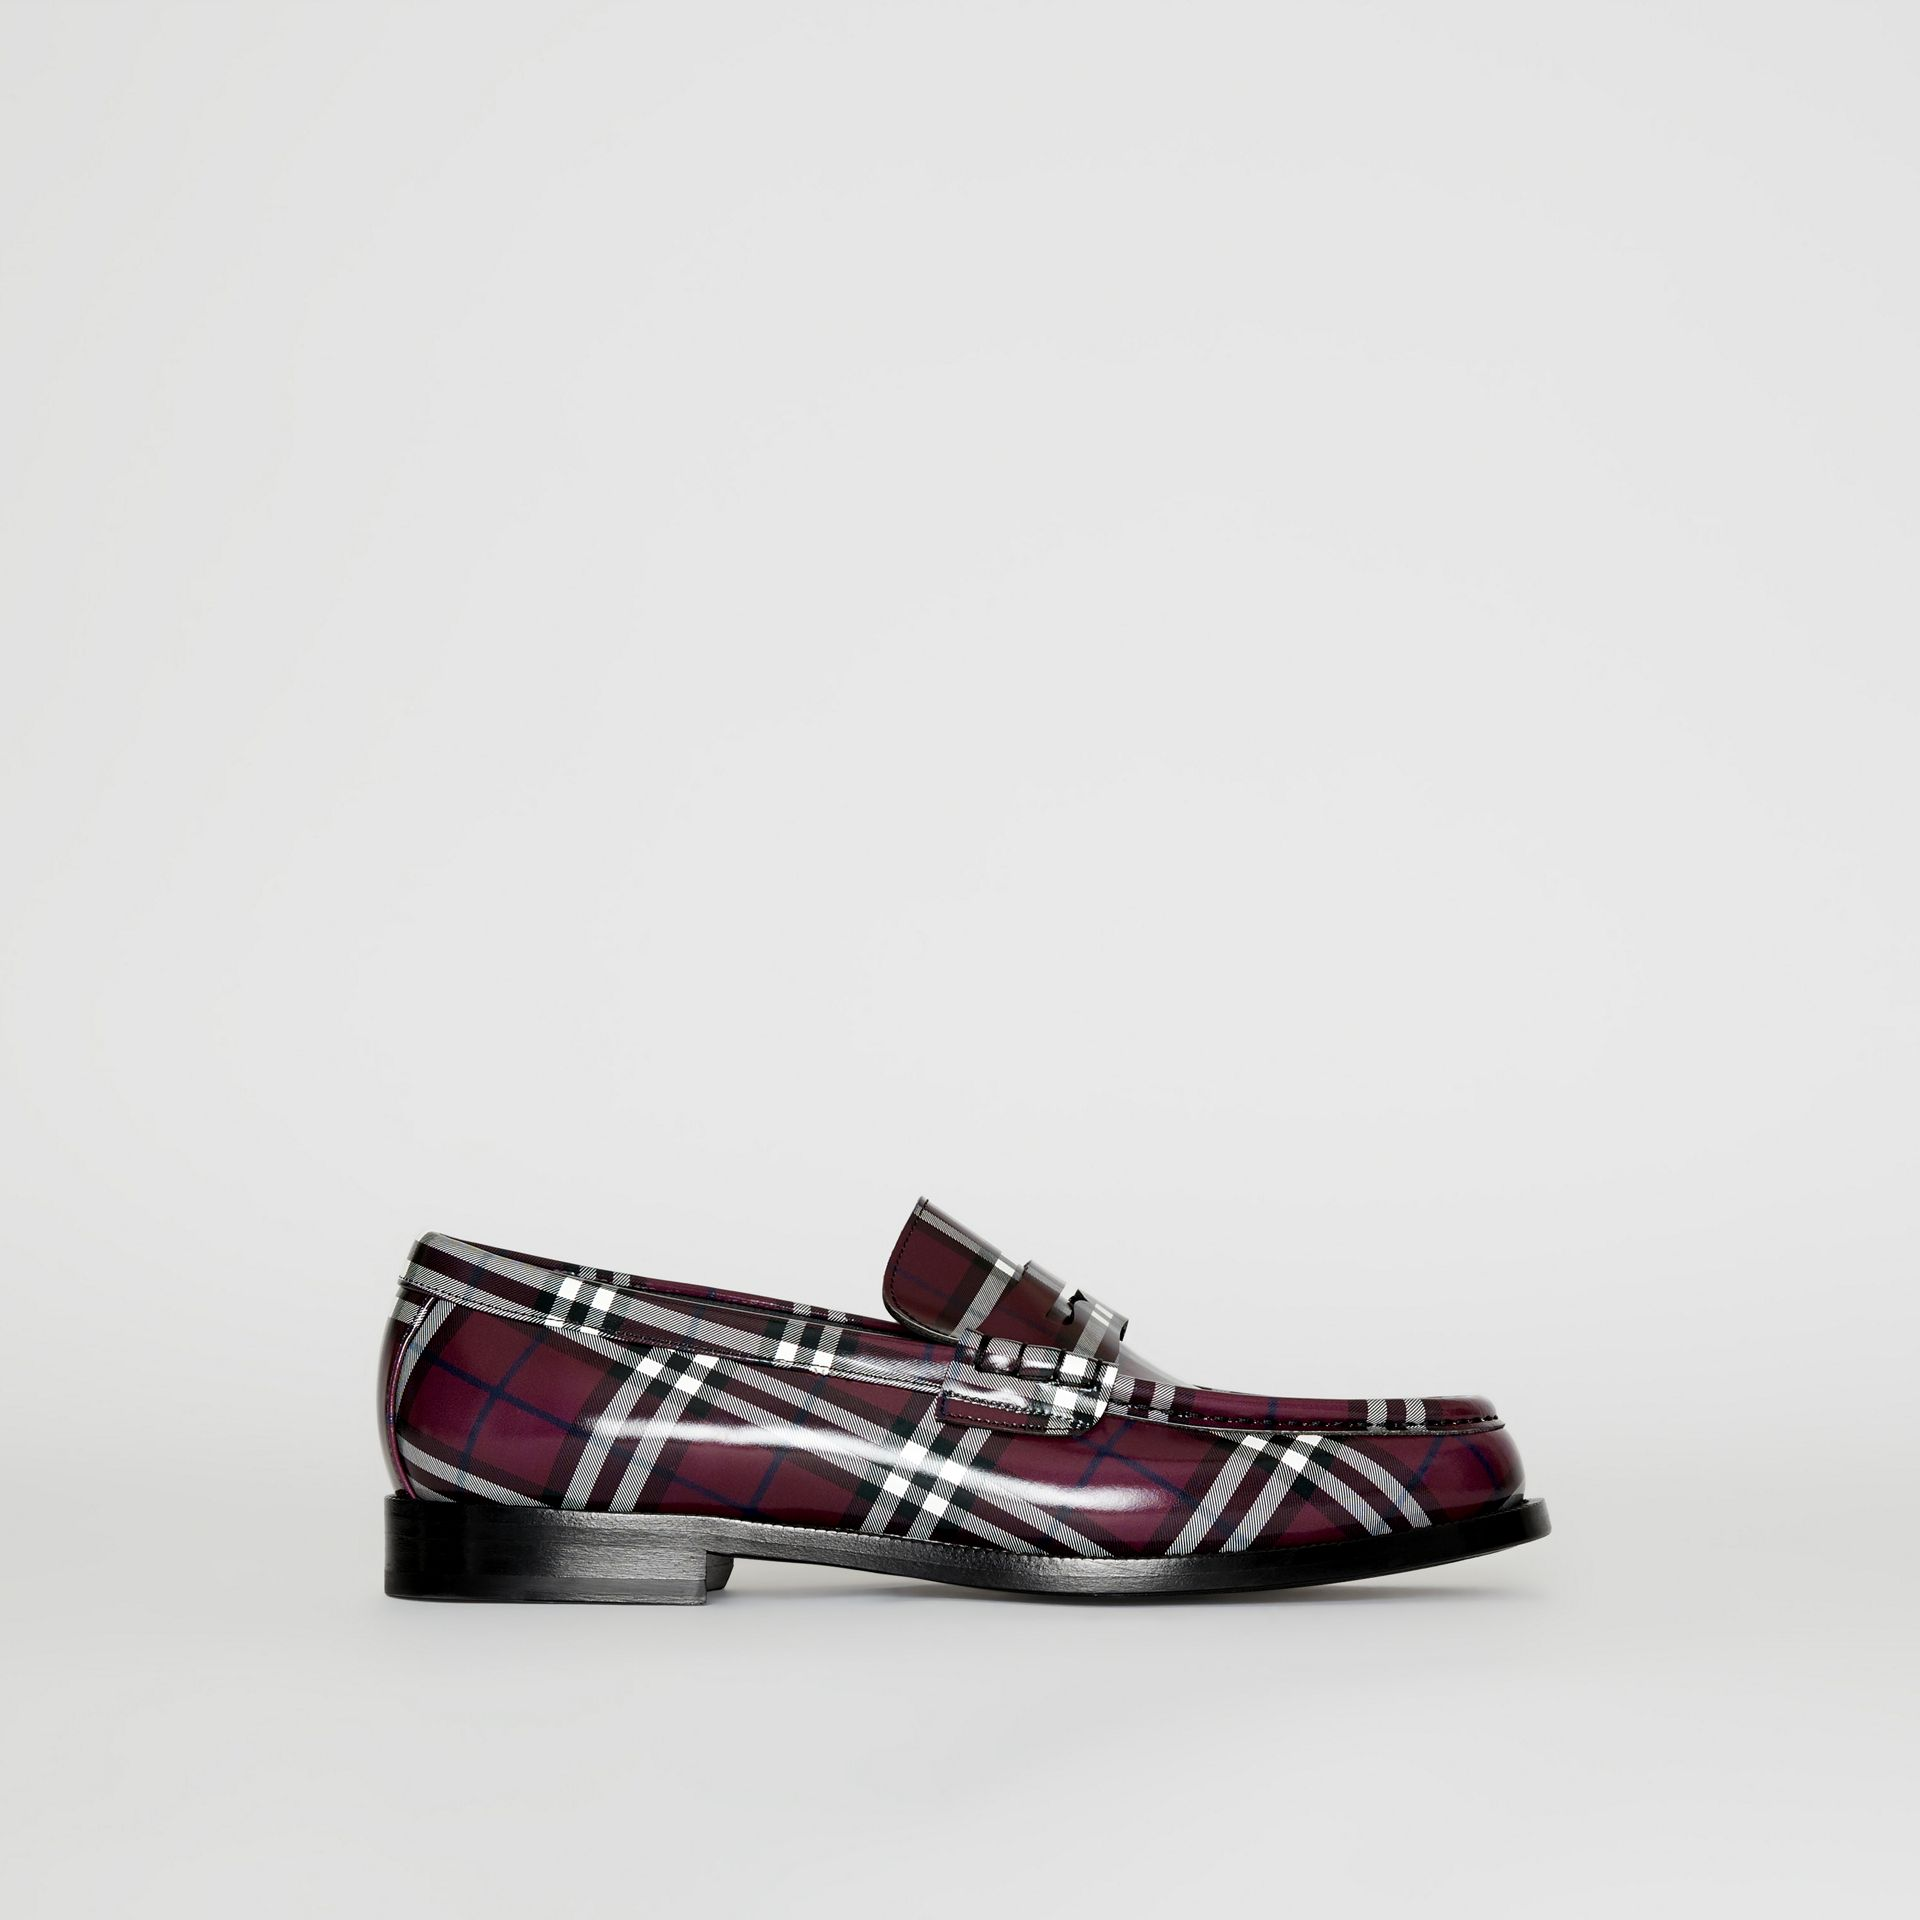 Gosha x Burberry Check Leather Loafers in Claret - Men | Burberry - gallery image 3